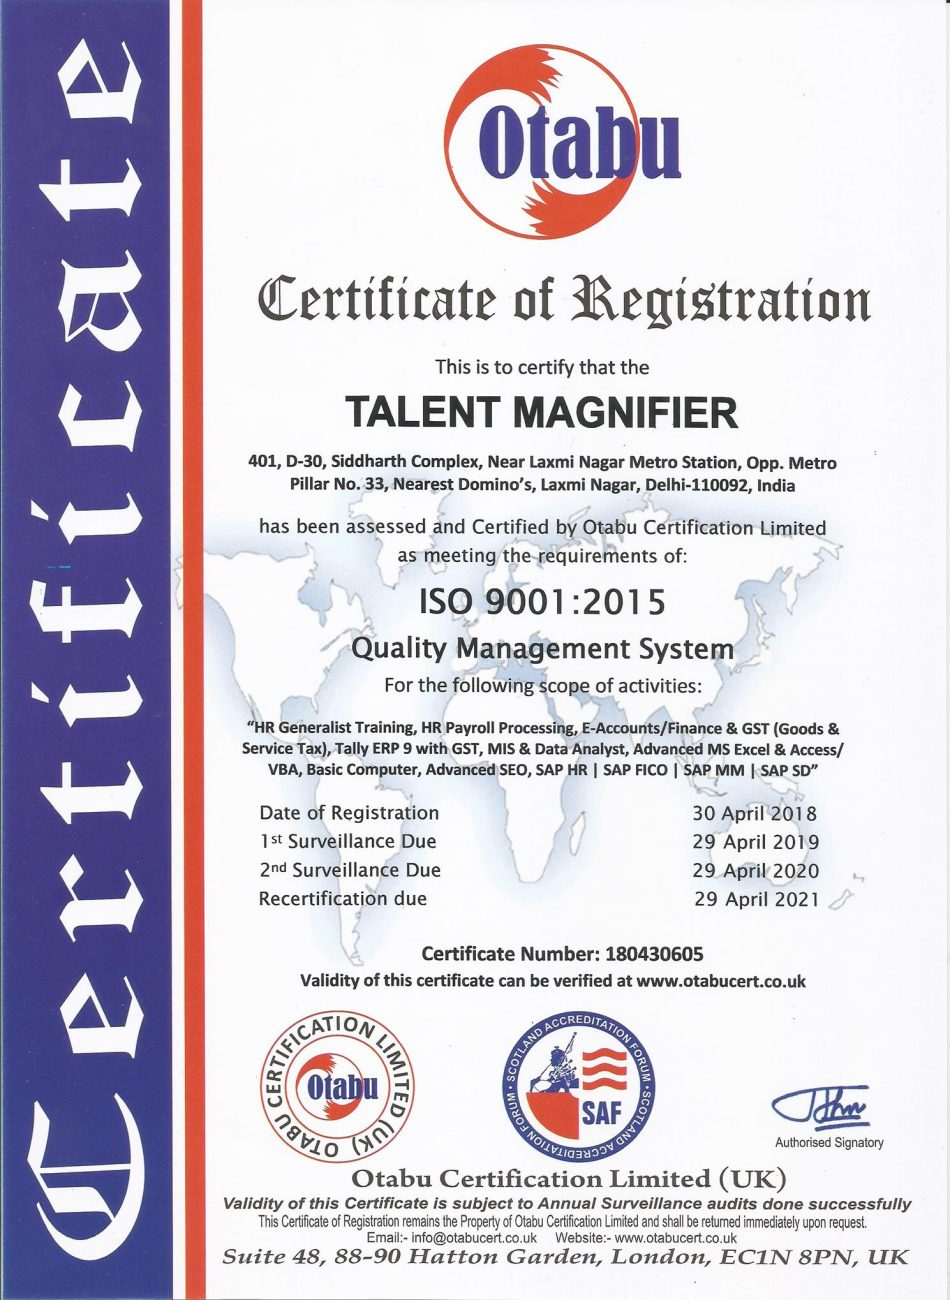 iso certification of talent magnifier